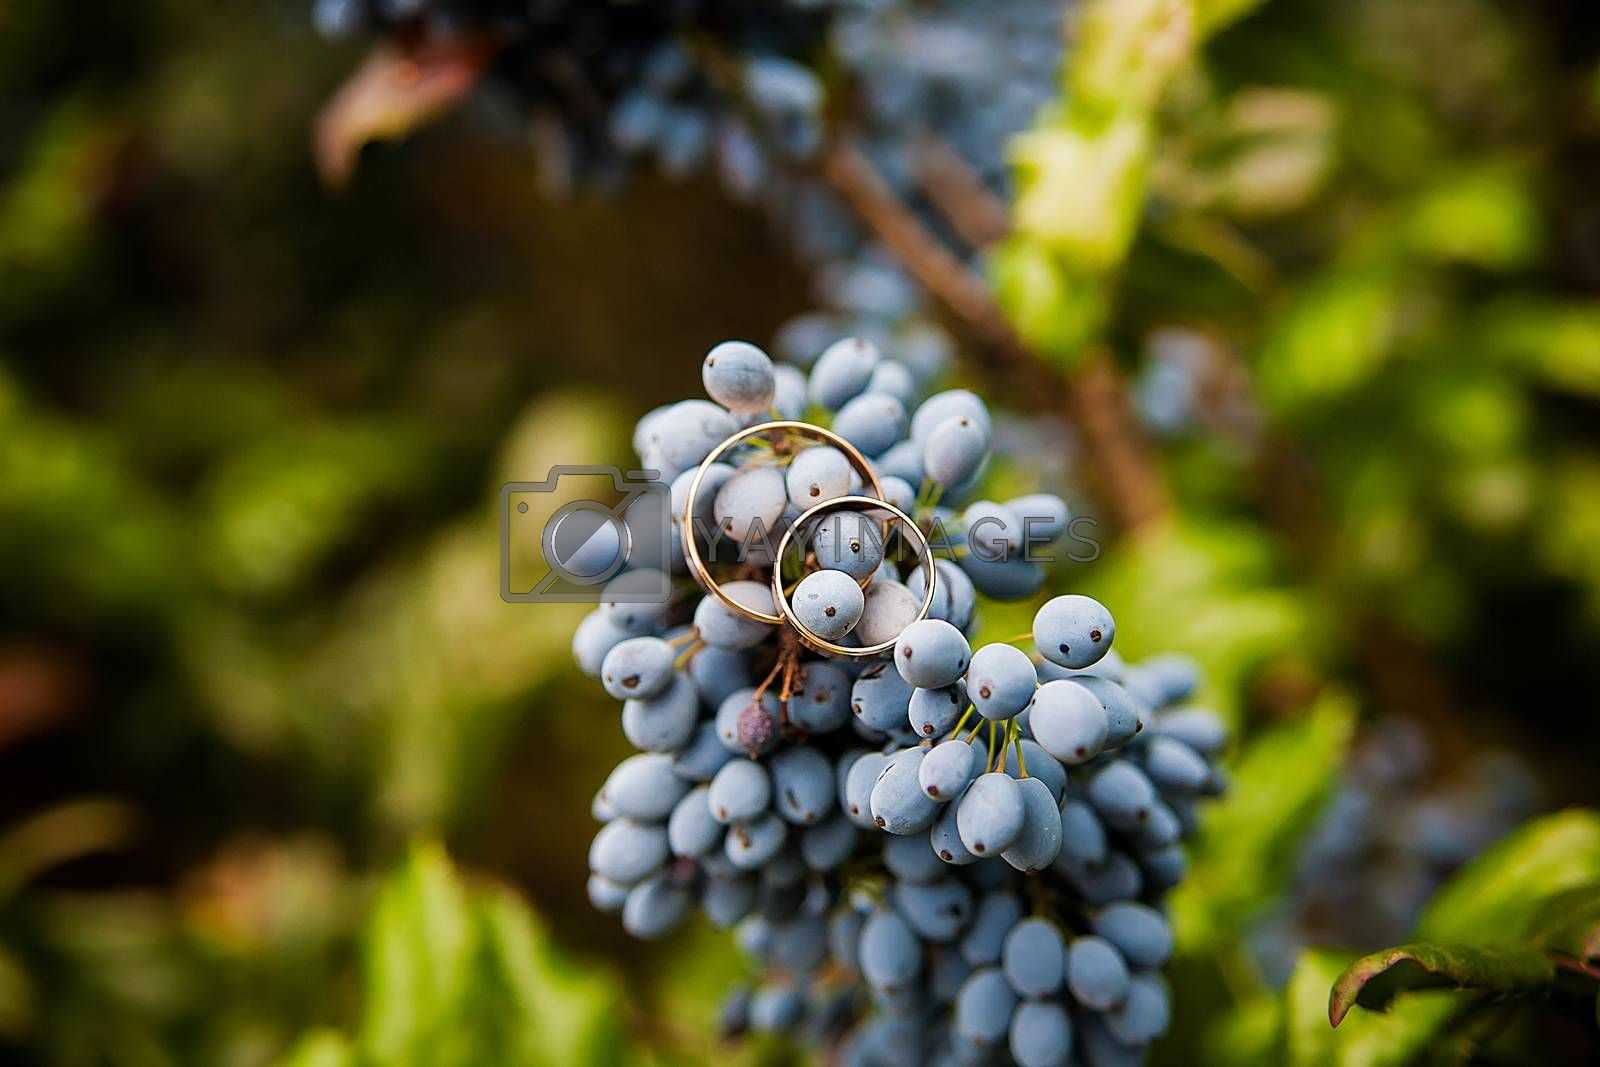 Royalty free image of blue bunch grapes and wedding rings by sfinks